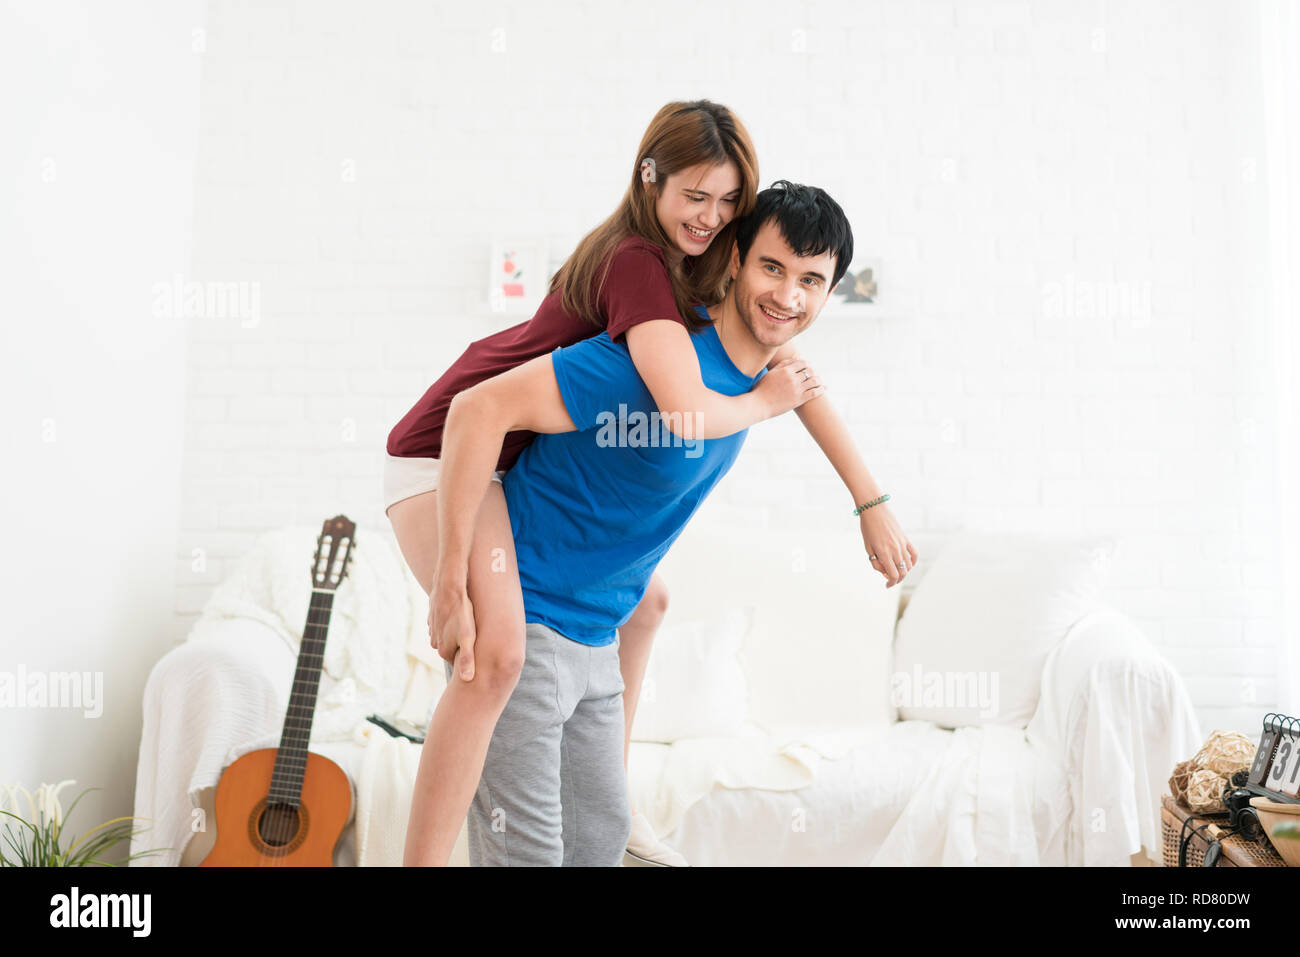 Romantic happy young couple relax at modern home indoors and have fun. Couple hugging and smiling while spending time together. Stock Photo